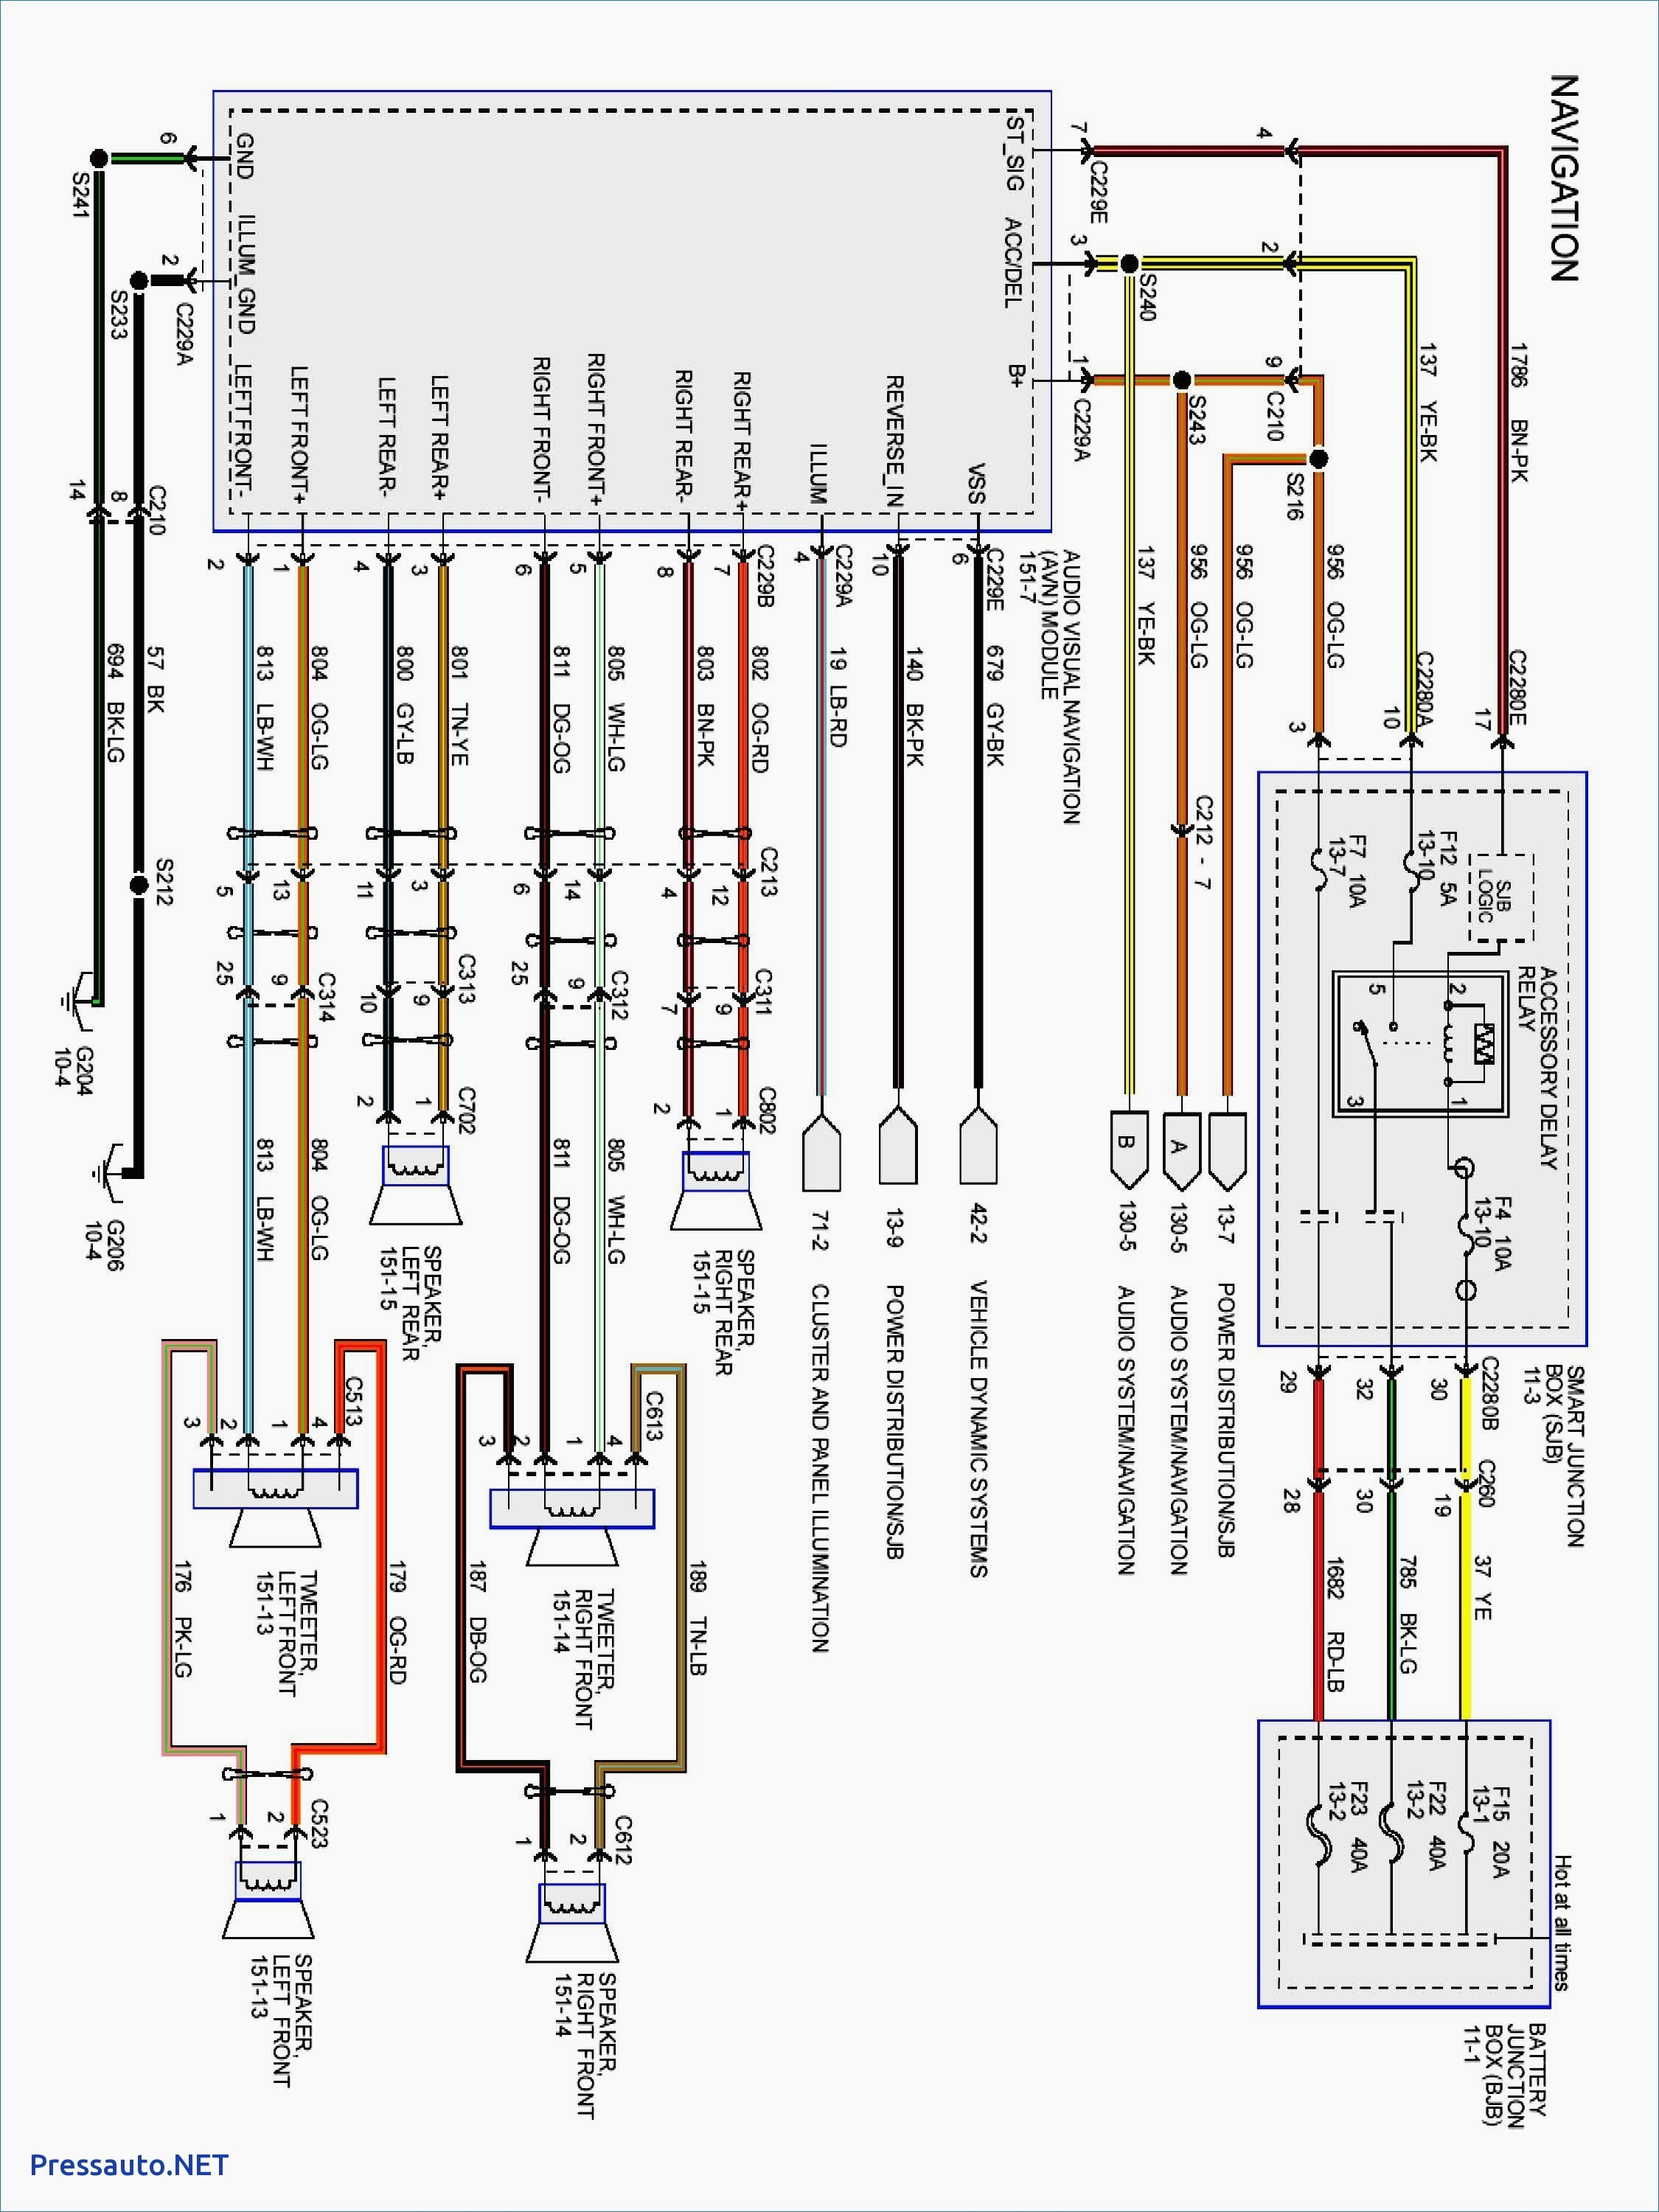 Diagram Ford Transit 1996 Wiring Diagram Full Version Hd Quality Wiring Diagram Pvdiagramxbowes Ufficiestudi It